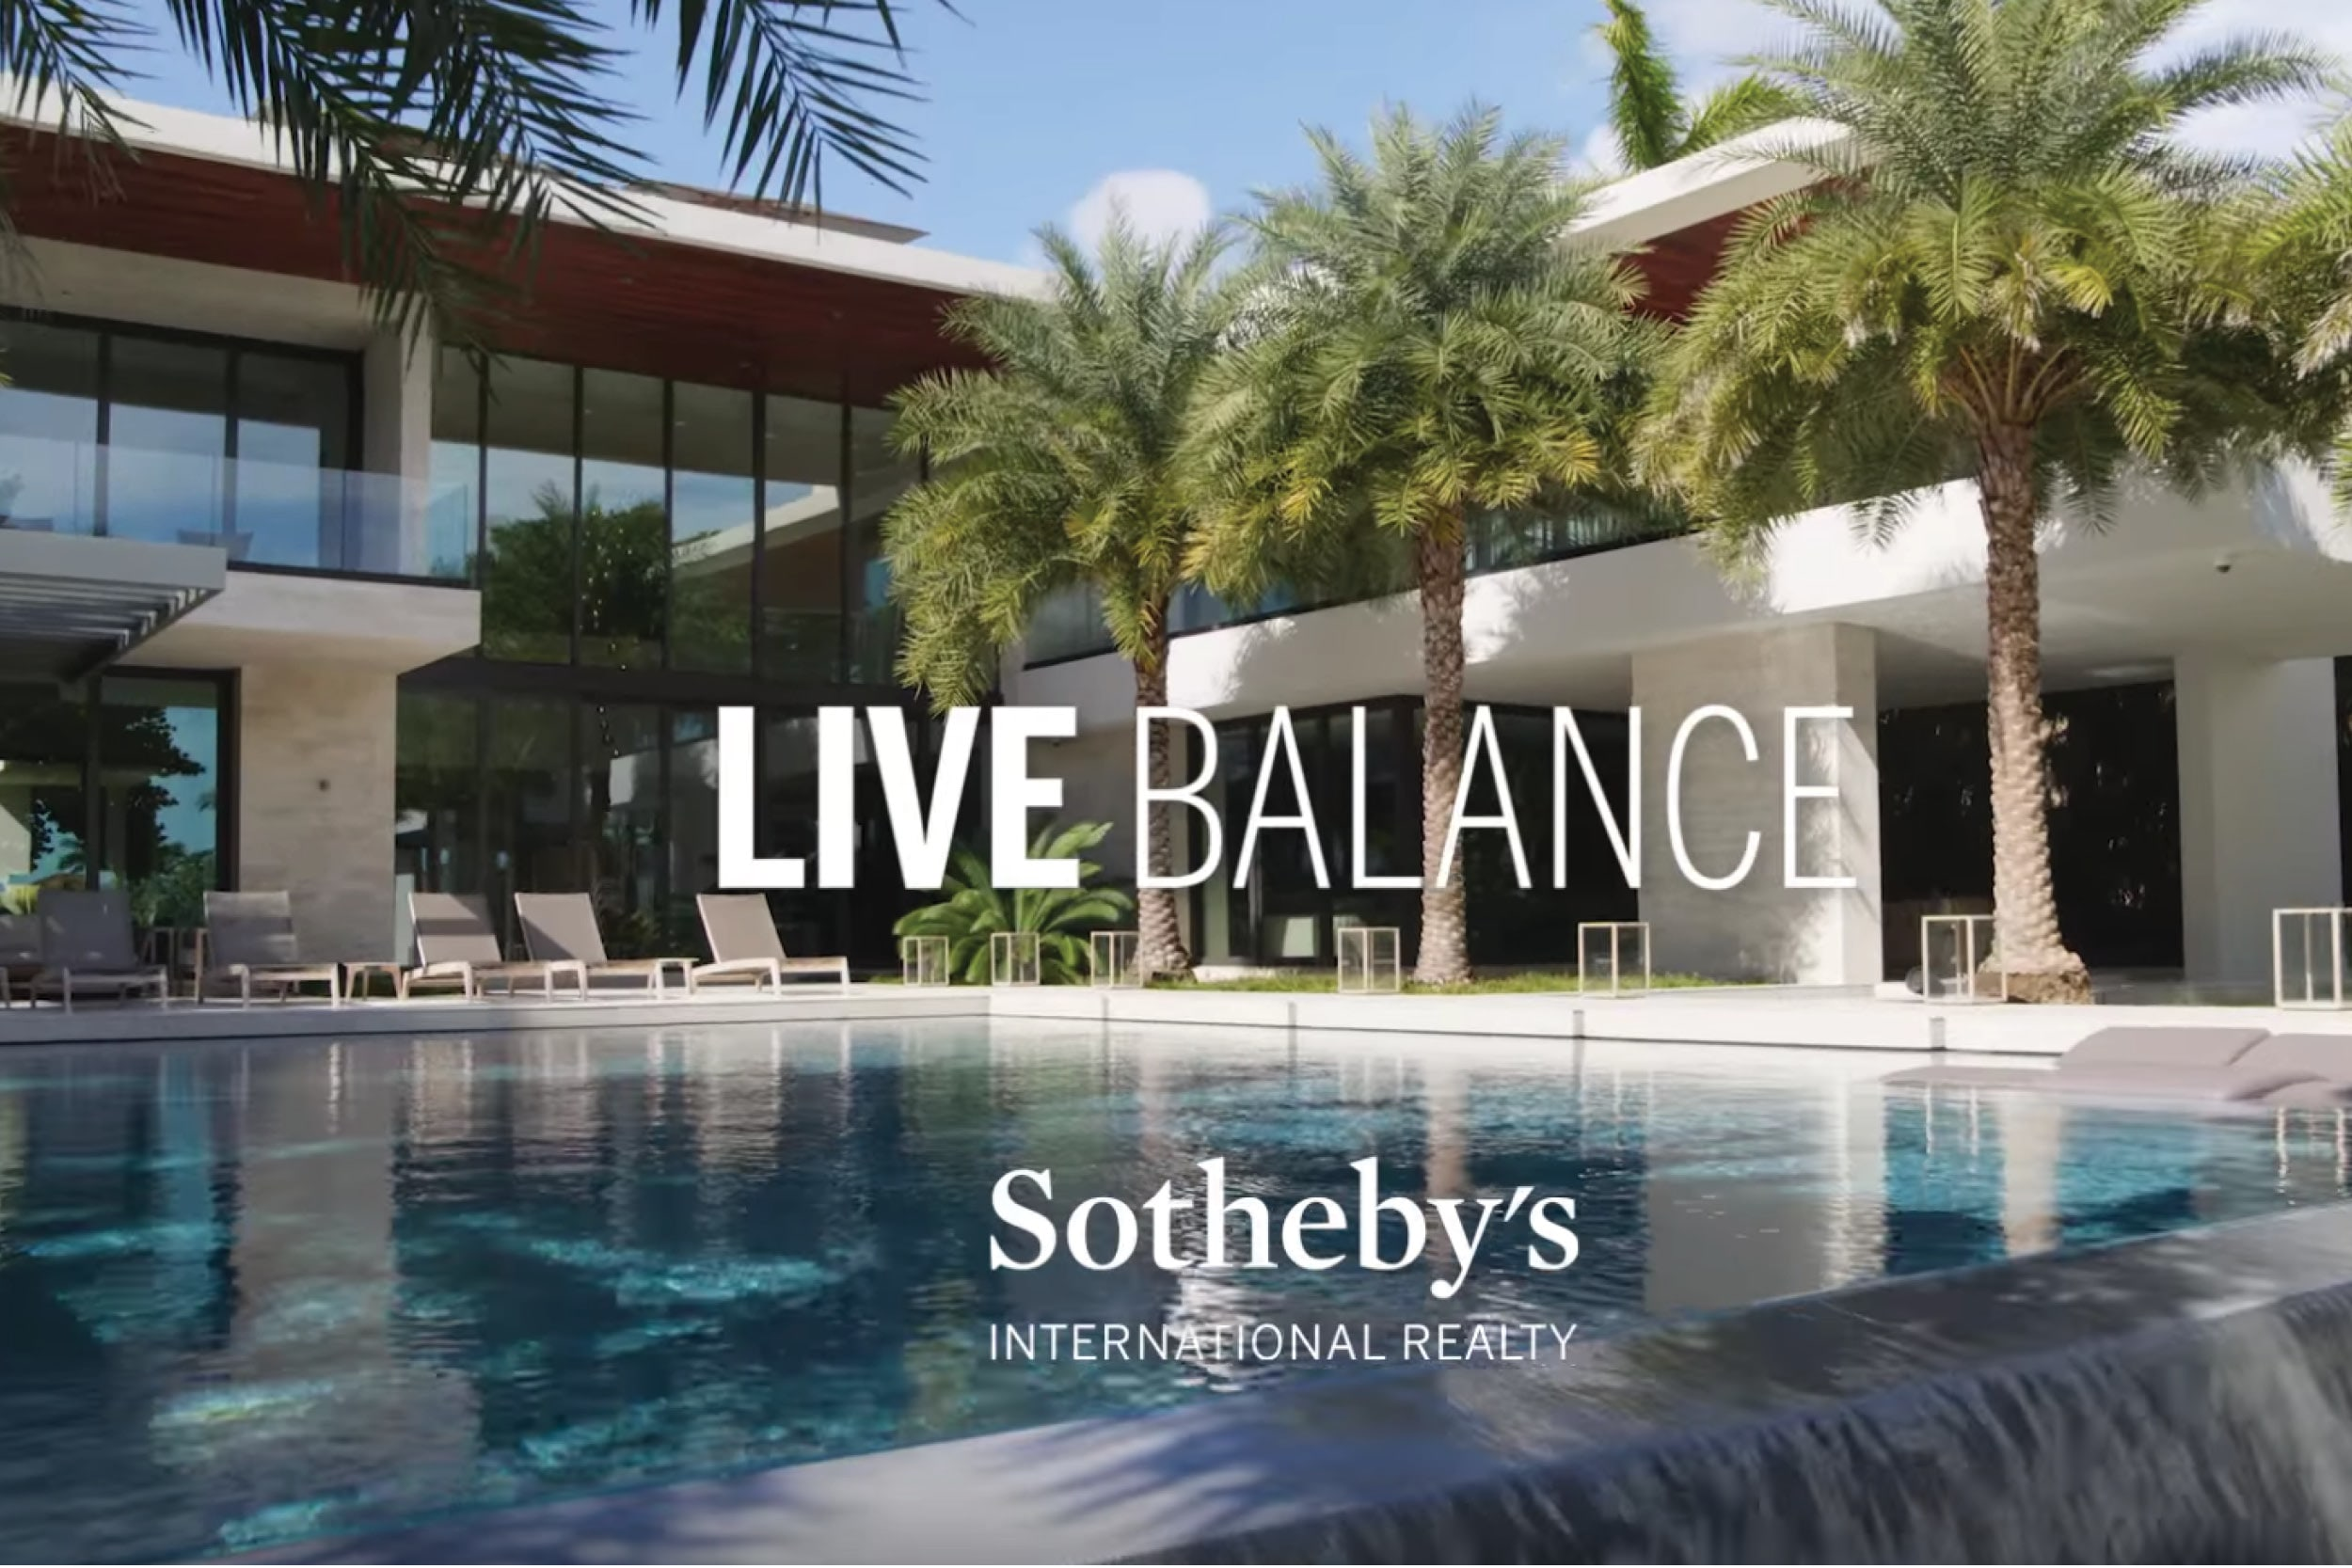 LIVE Balance - Sotheby's International Realty